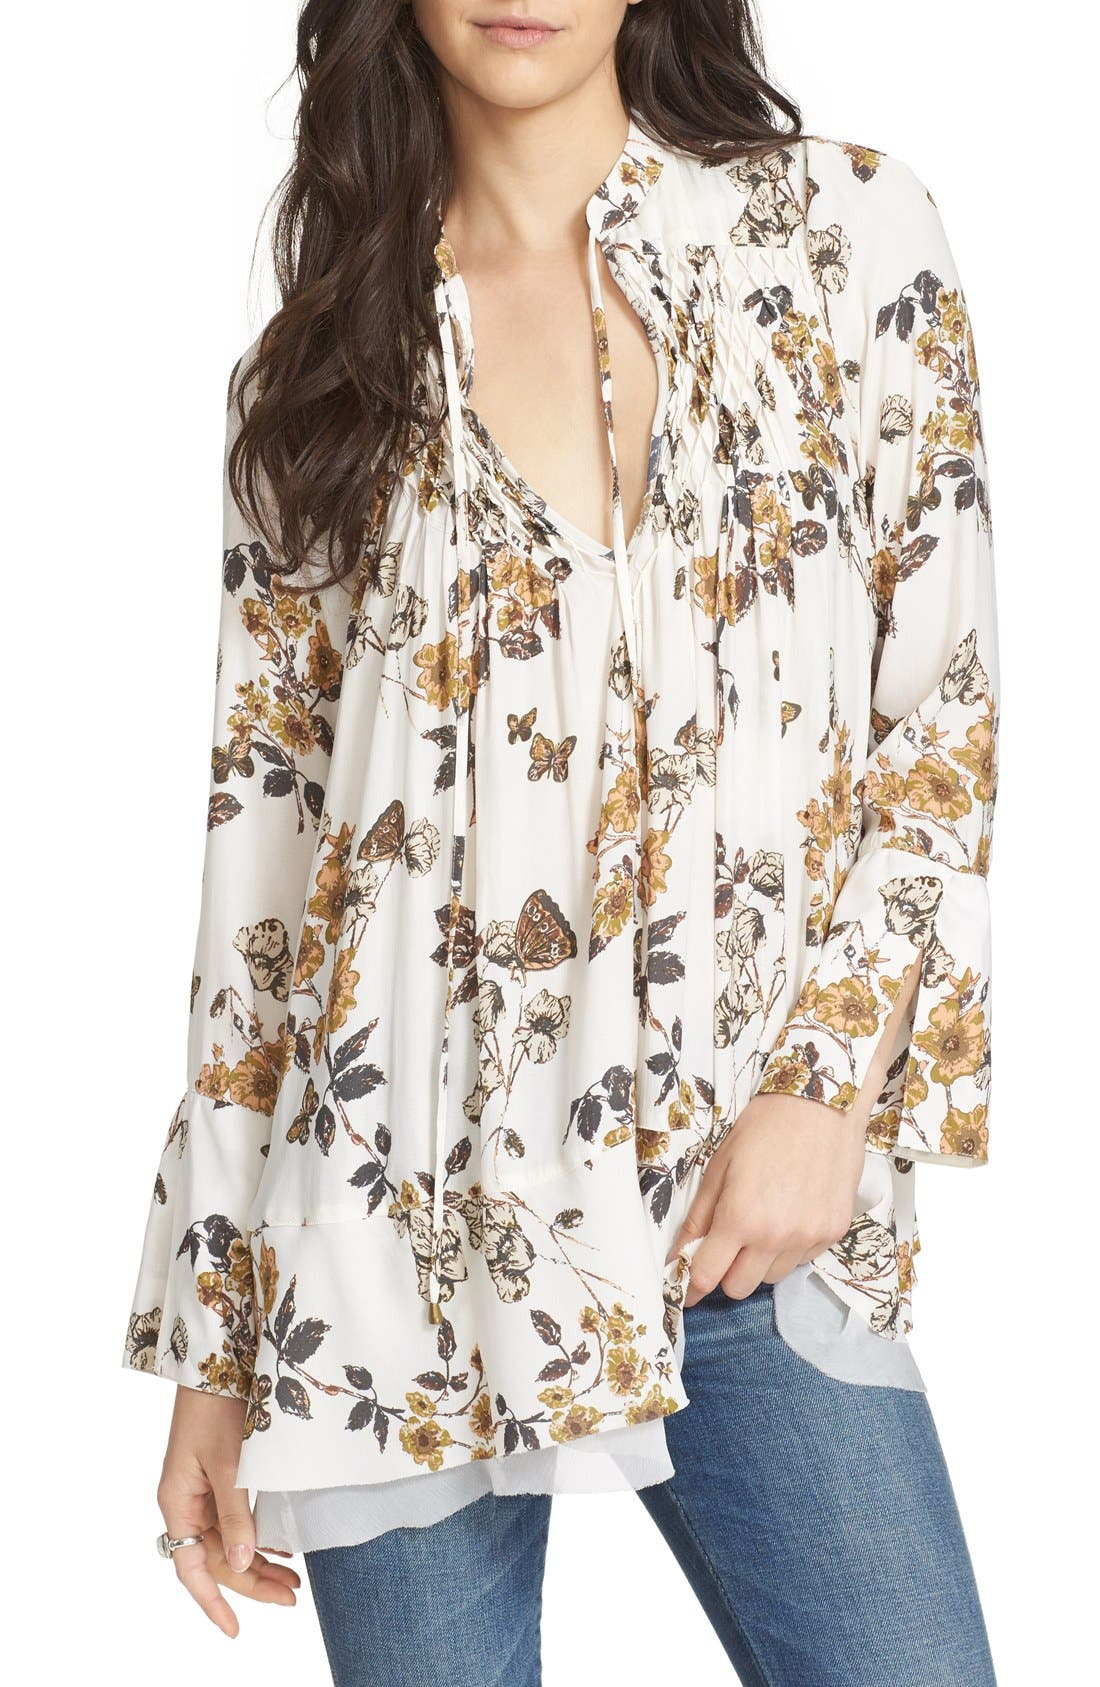 Free People Floral Print Smocked Tunic